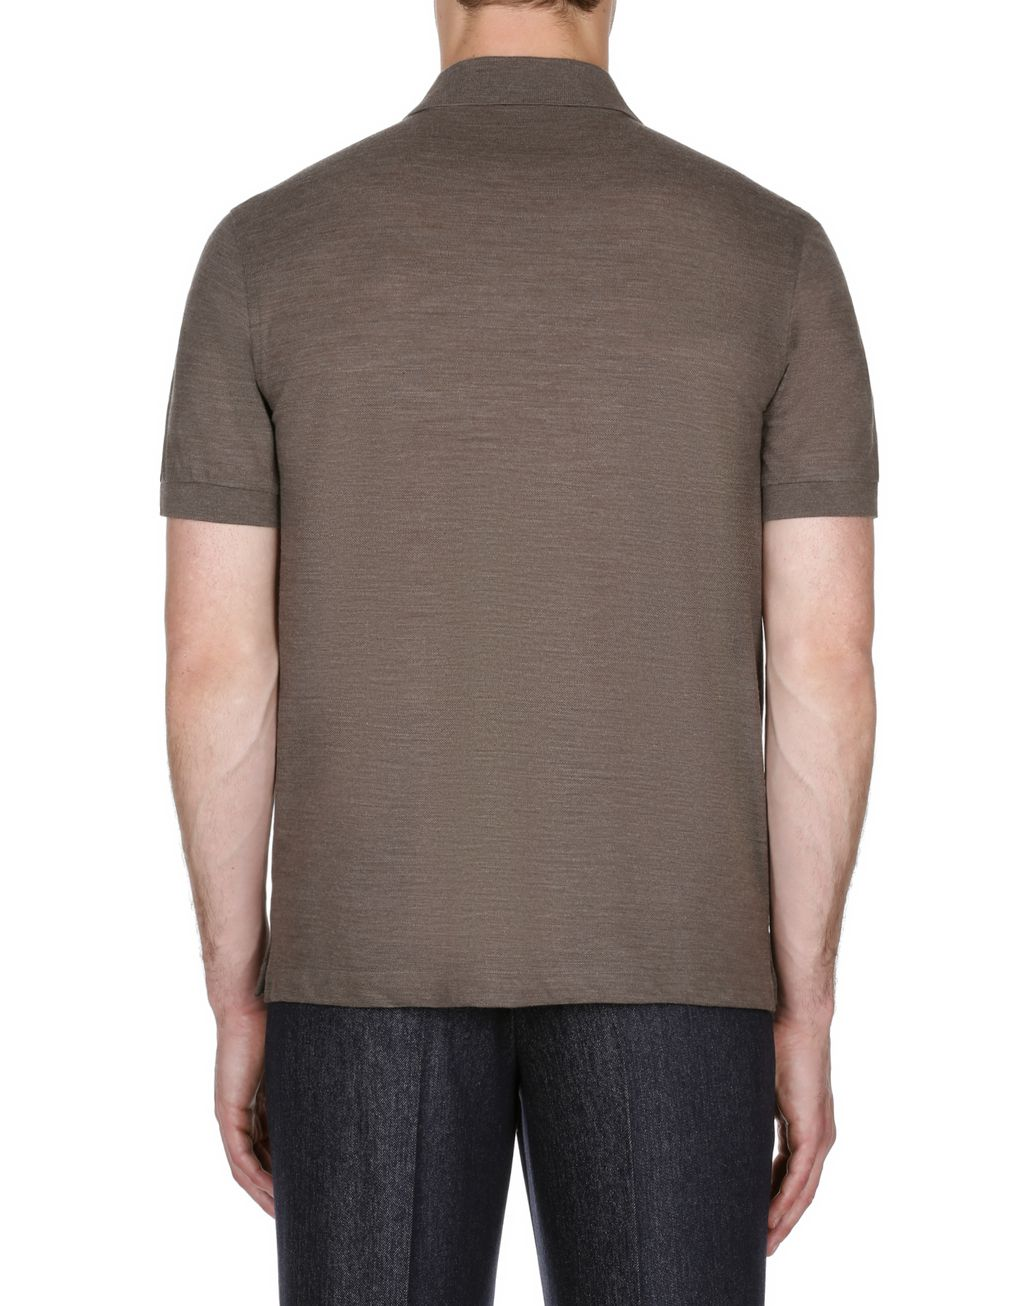 Zipped T-shirts brioni brown zipped polo shirt t-shirts u0026 polos man d YYDBFQT